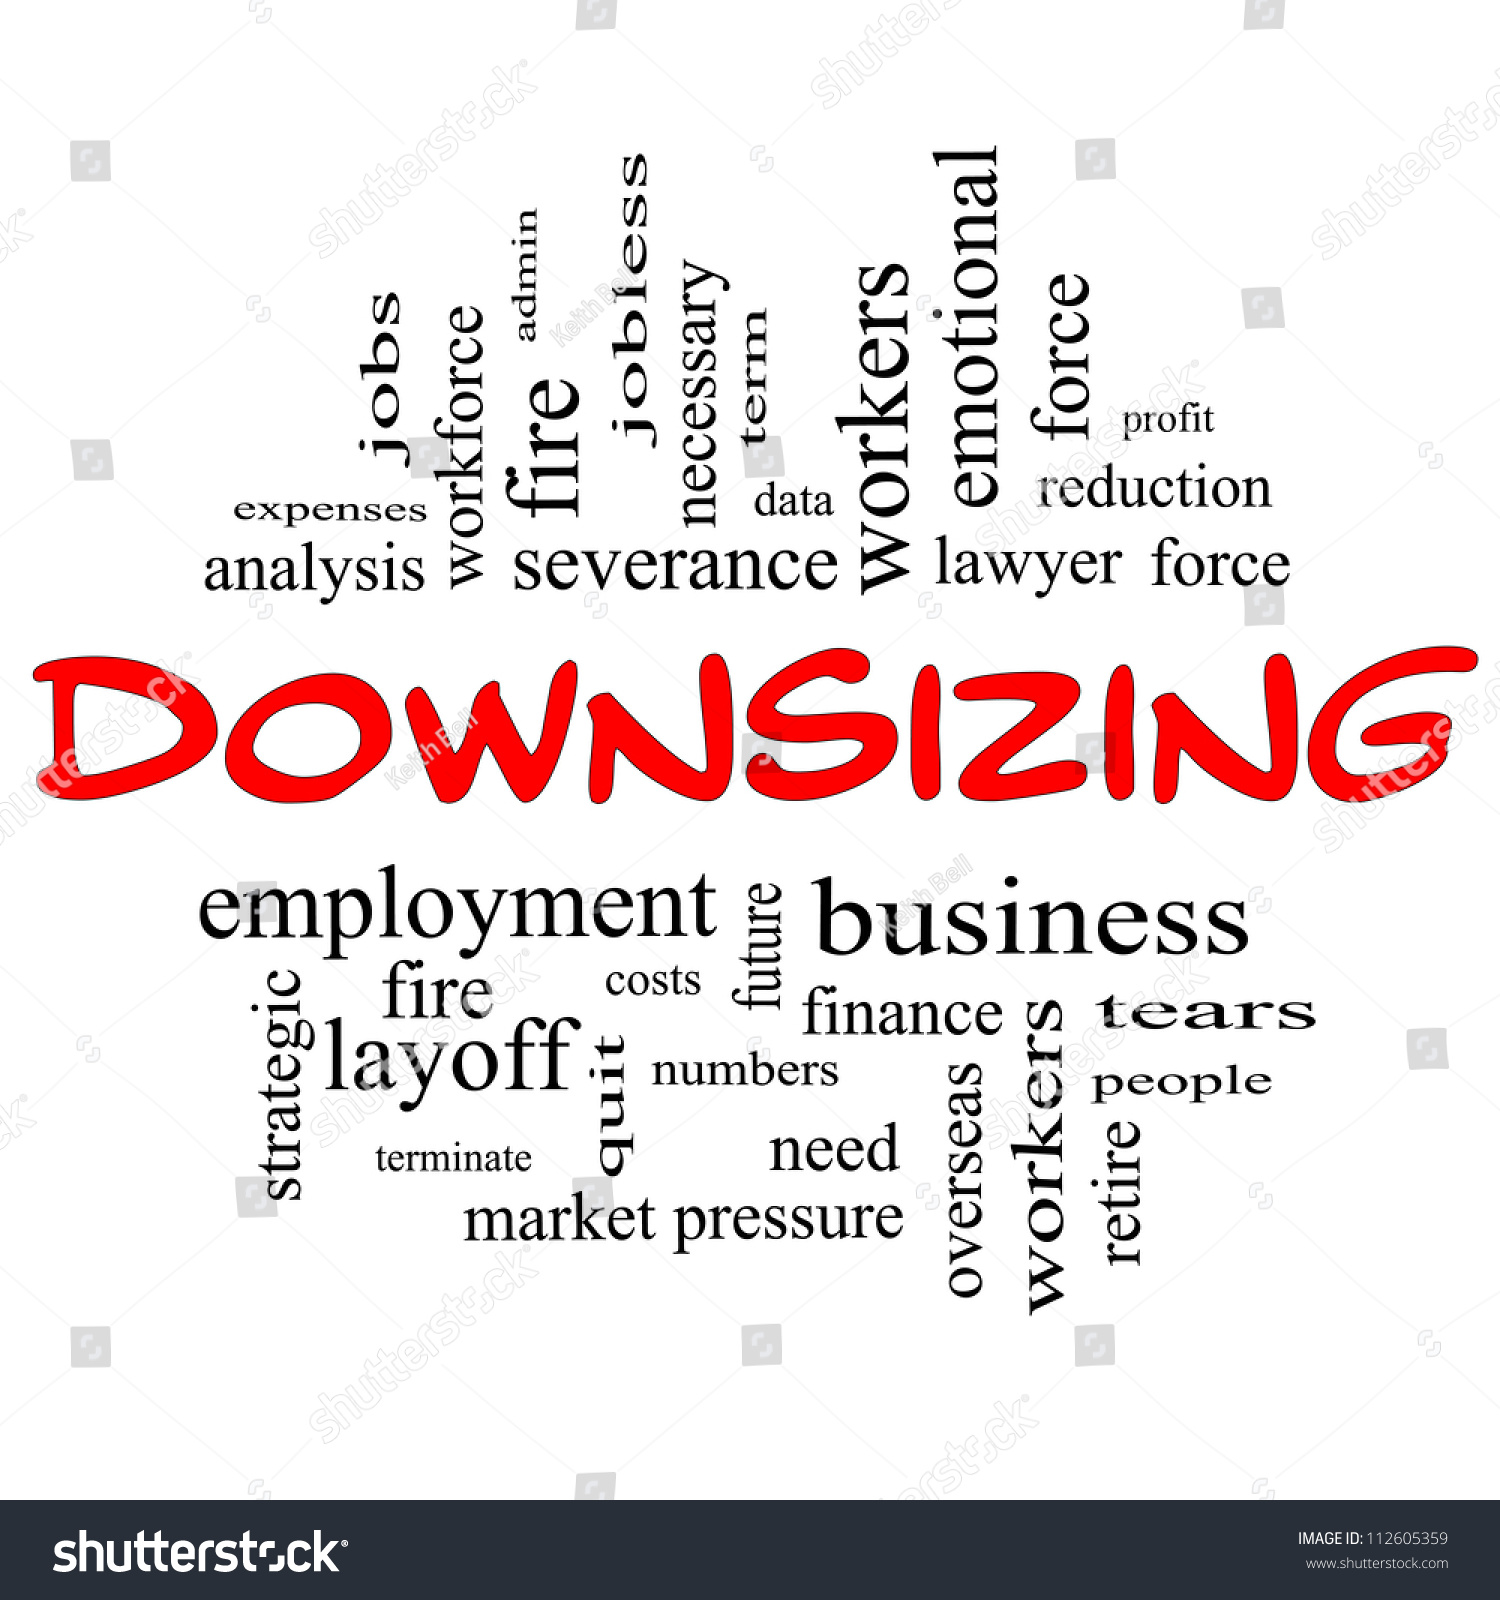 downsizing word cloud concept in red and black letters great save to a lightbox